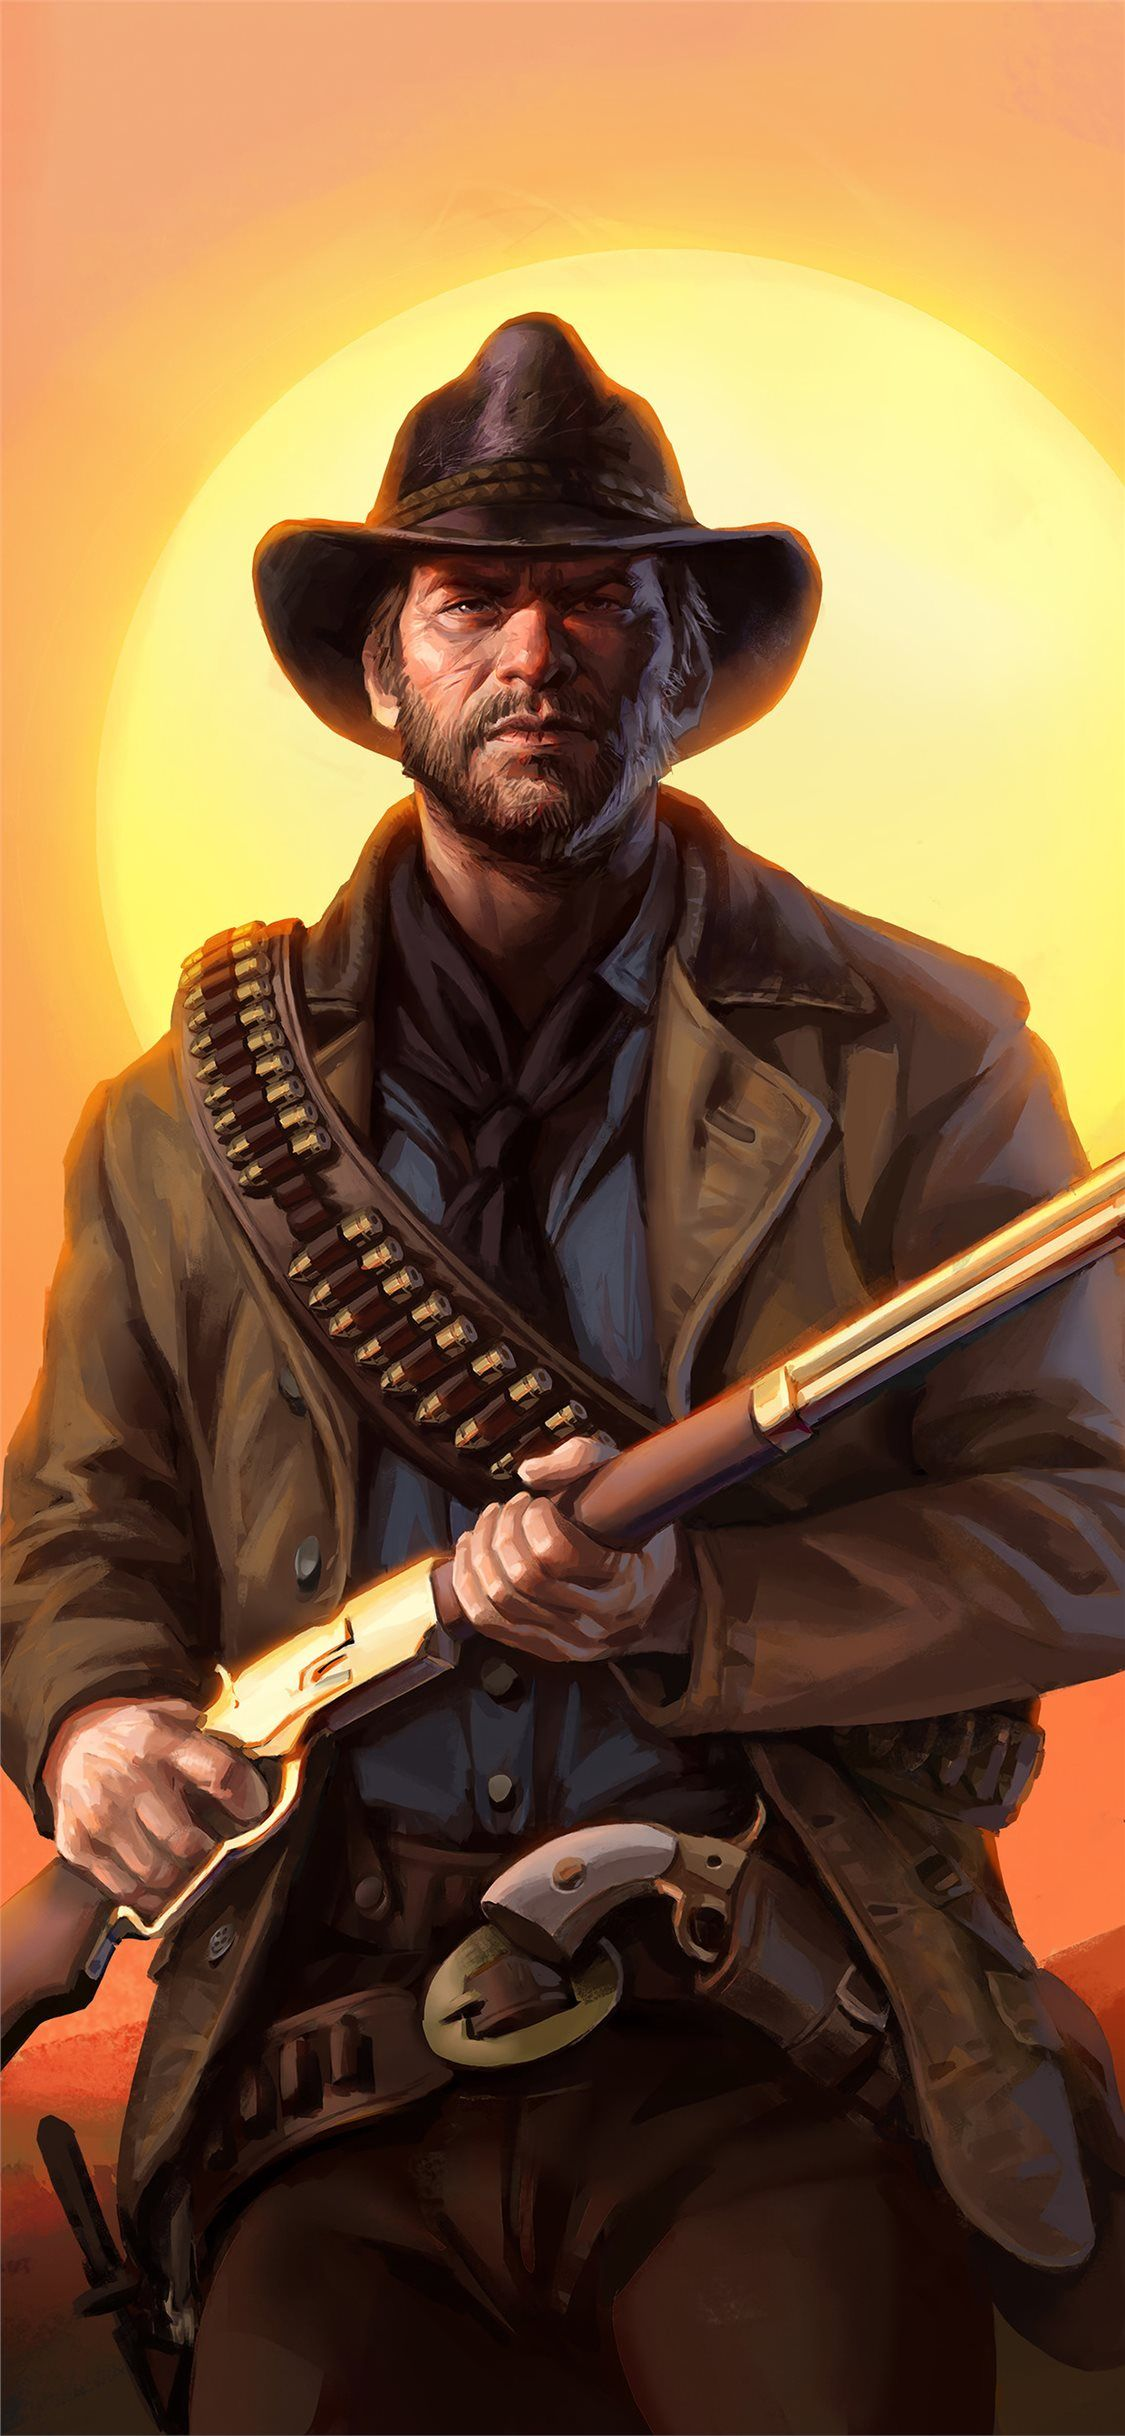 Red Dead Redemption Art Reddeadredemption2 Games Artwork Artstation Iphonexwallpap Red Dead Redemption Art Red Dead Redemption Artwork Red Dead Redemption